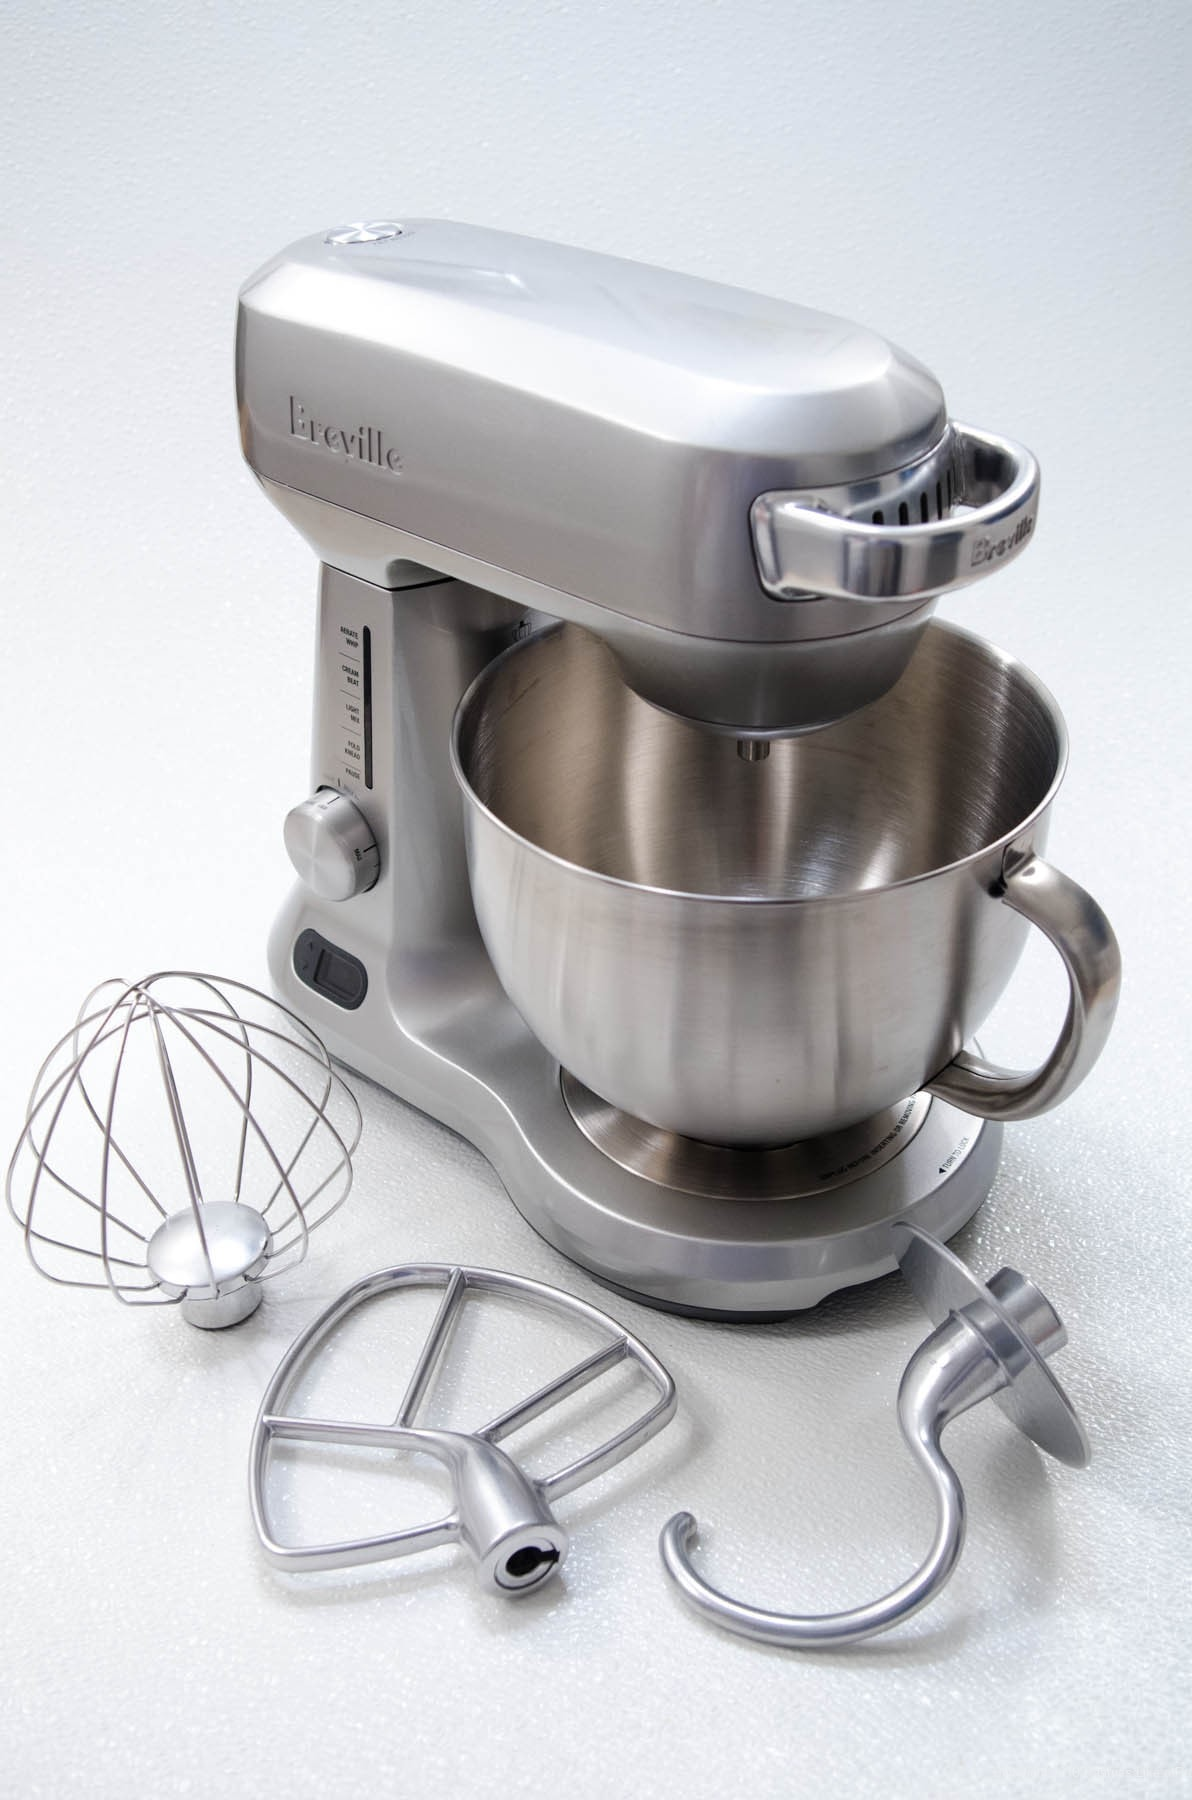 kitchenaid peel spiralizer and stand p core slice plus attachment aid attachments mixer zi kitchen with